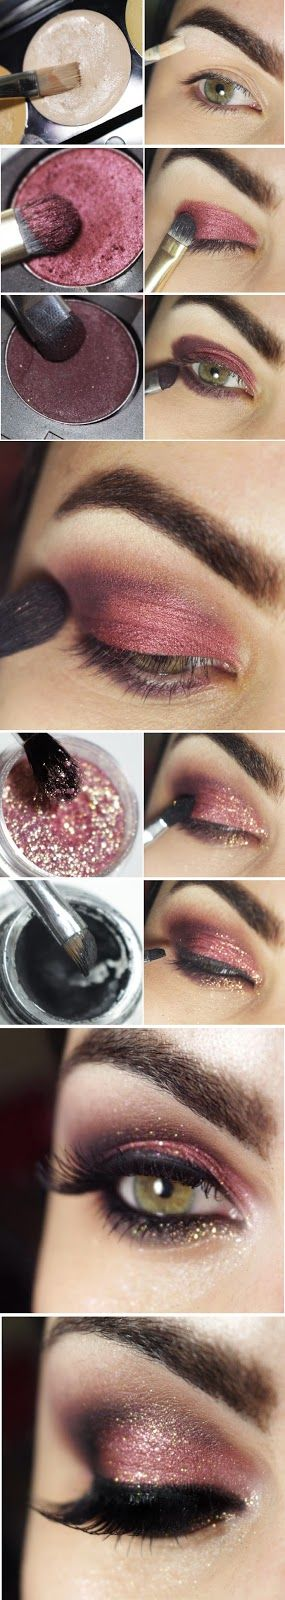 Pink and Wine Makeup Tutorials - definitely toned down a little bit but like this look